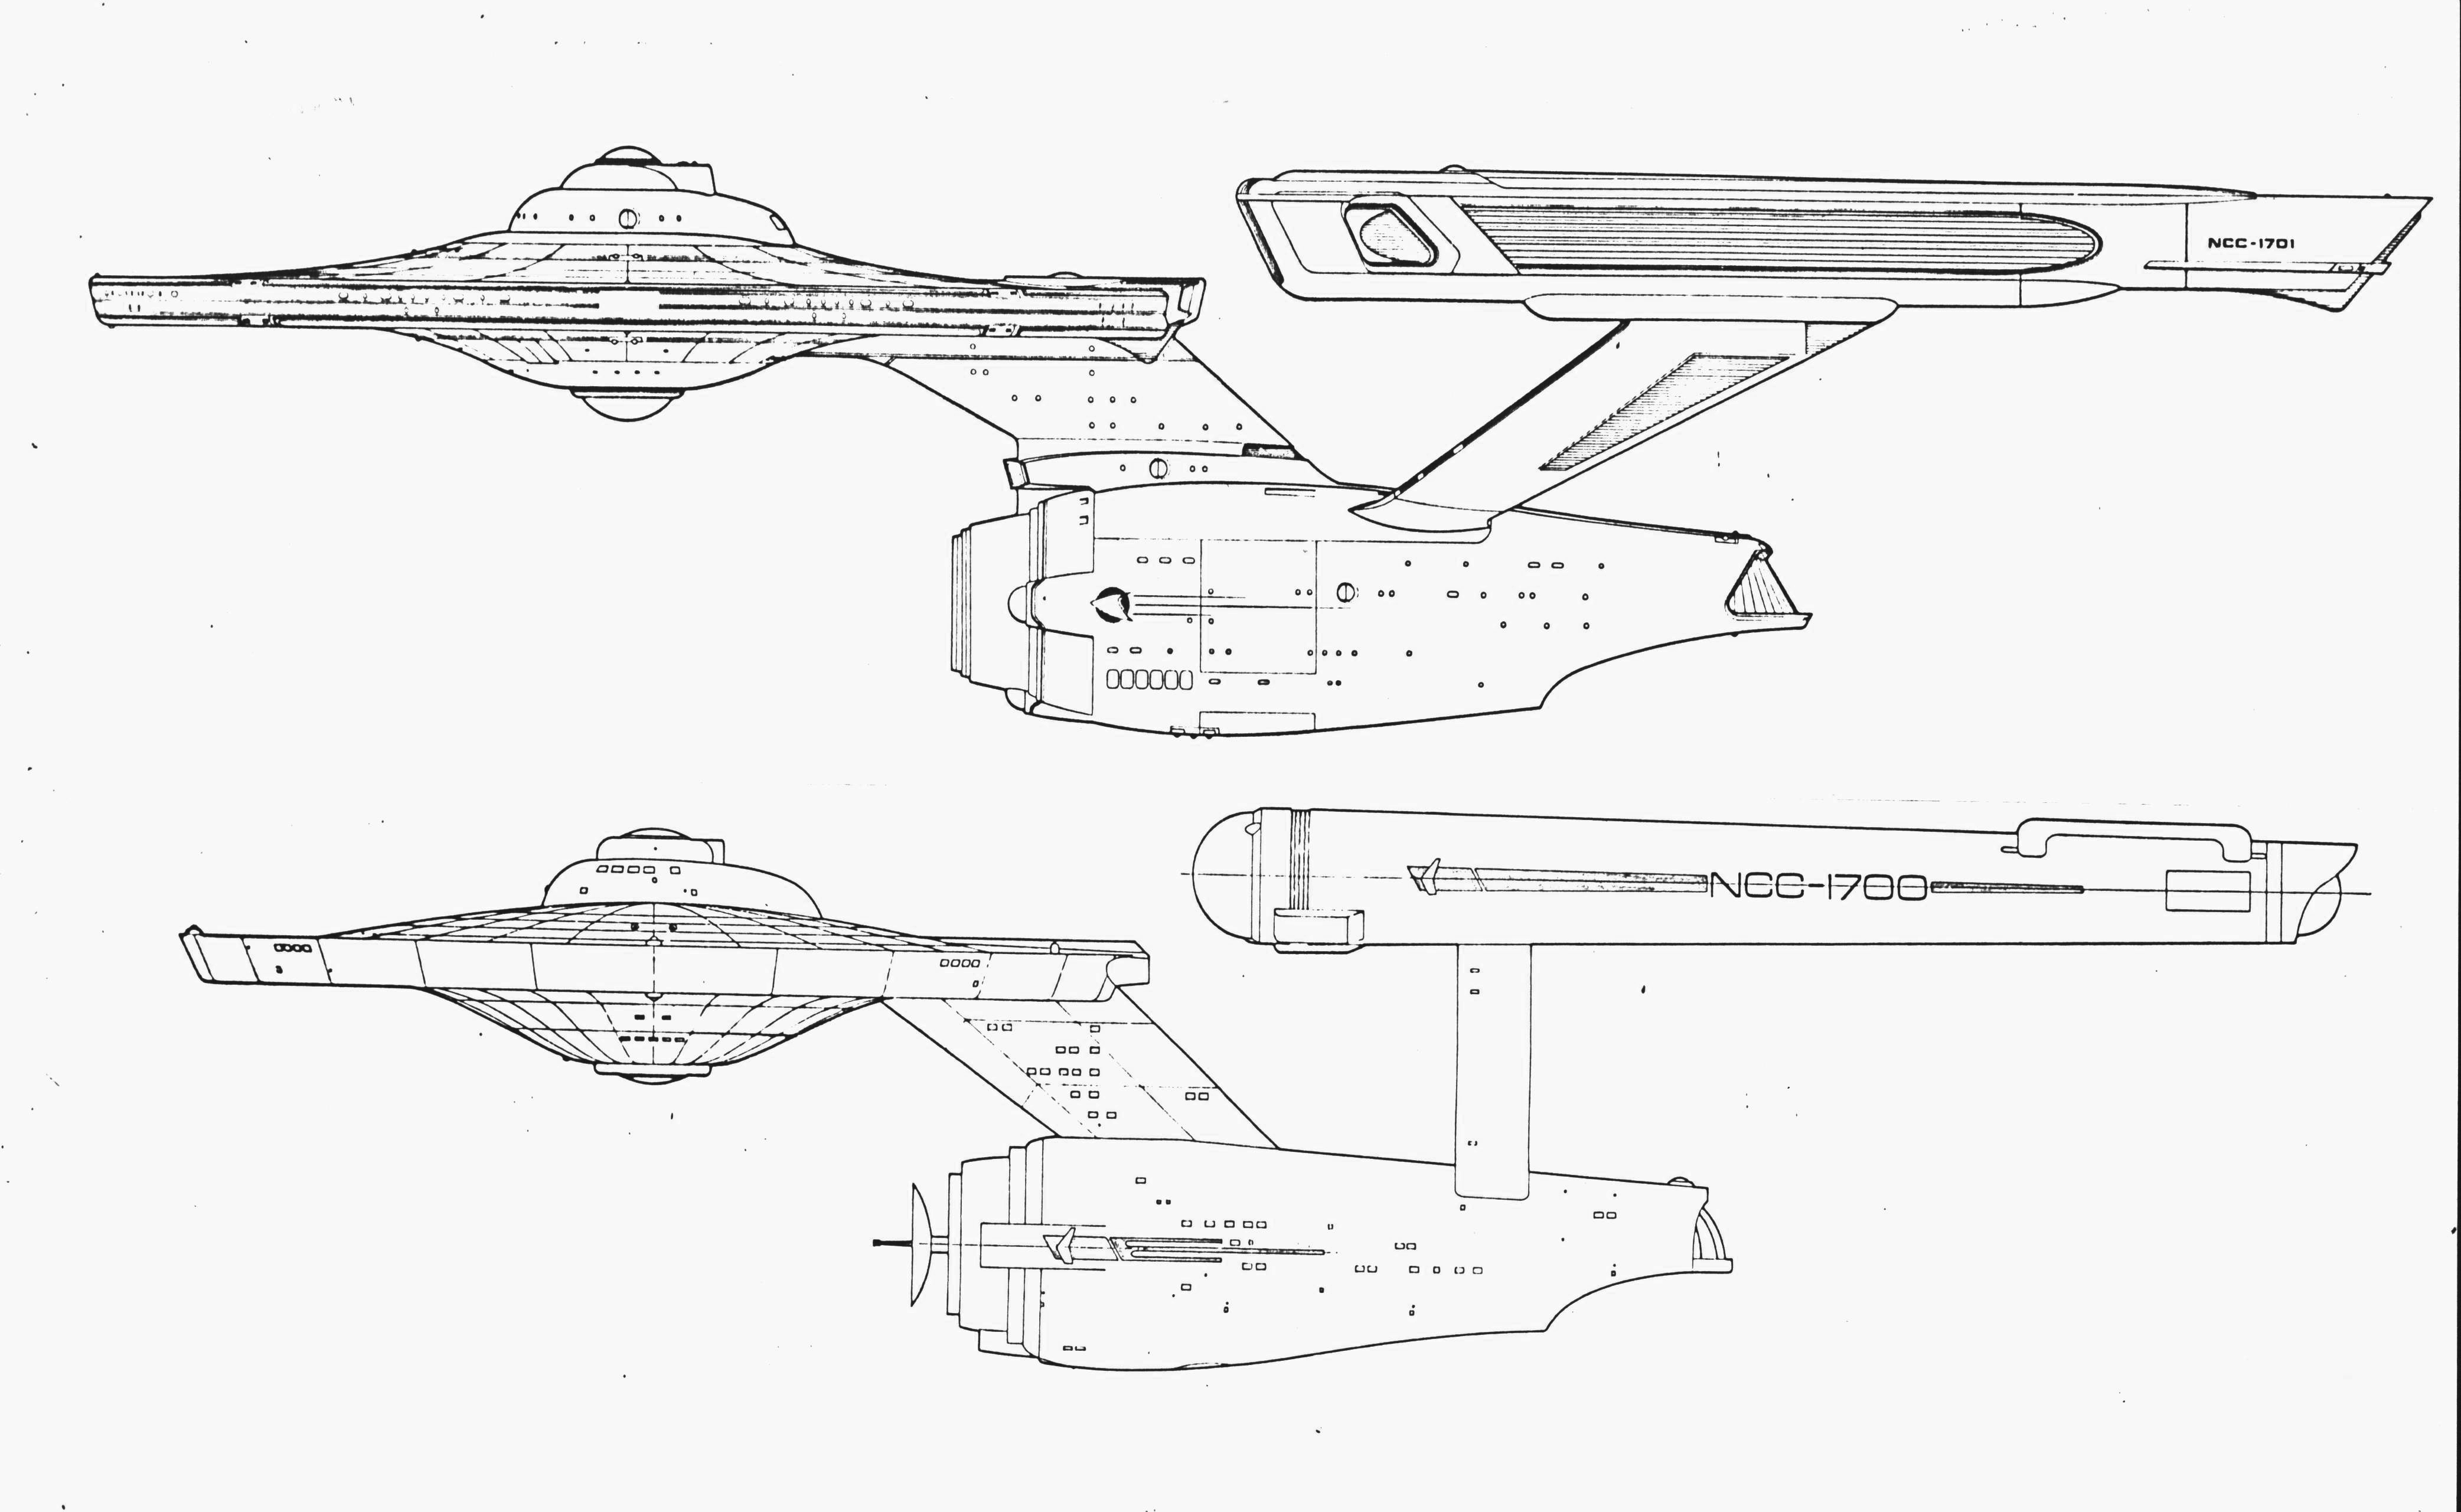 Enterprise Old and New Profile